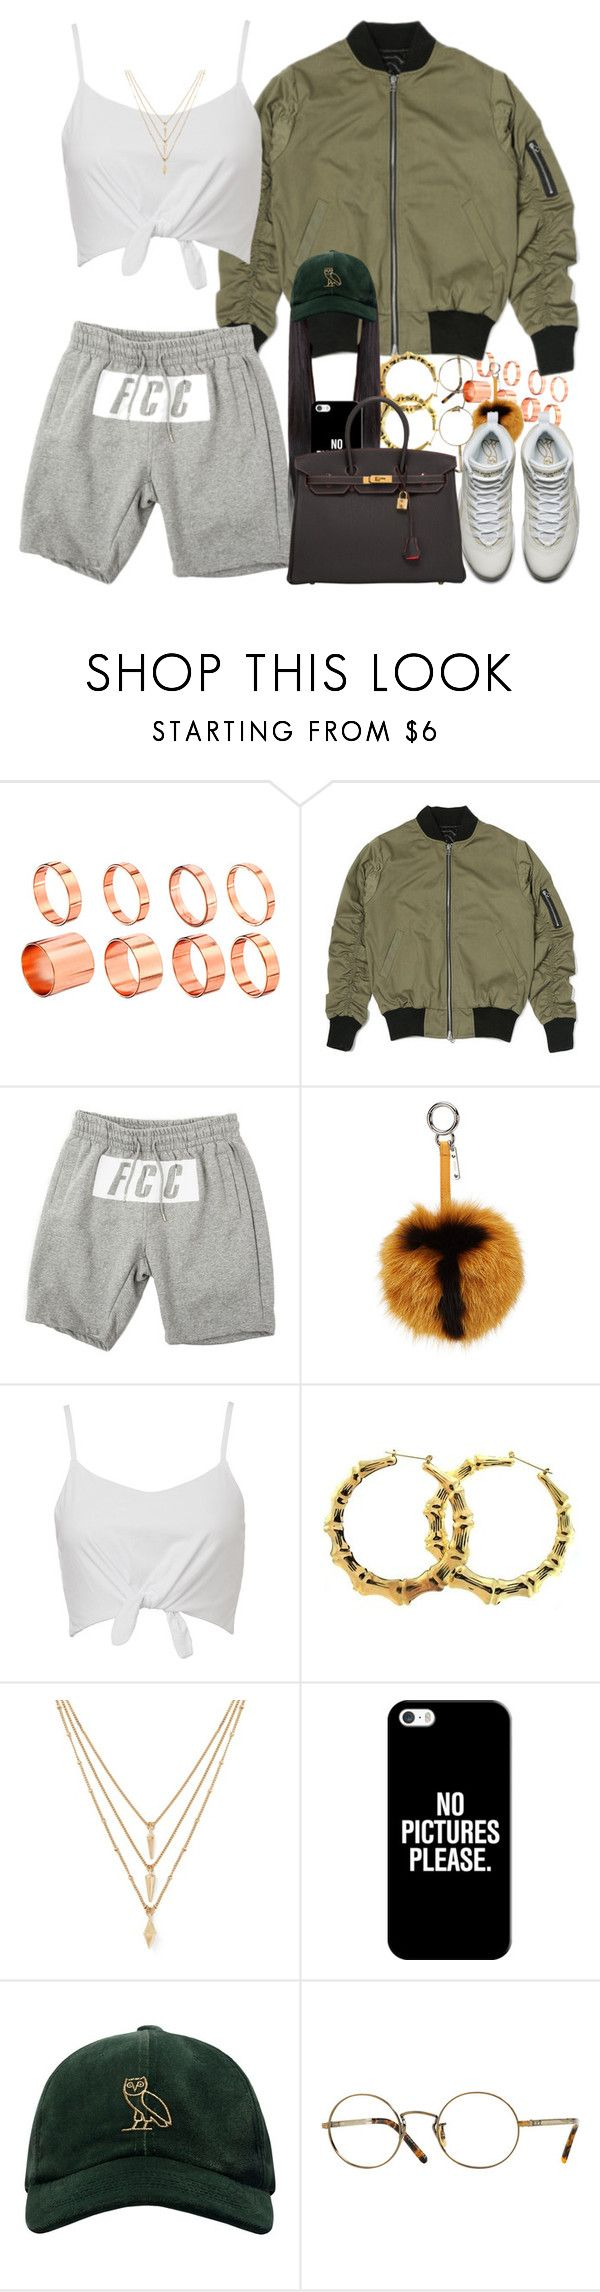 OVO Crew by dope-madness on Polyvore featuring Hermès, ASOS, Forever 21, Casetify, Fendi, Oliver Peoples, October's Very Own, women's clothing, women's fashion and women